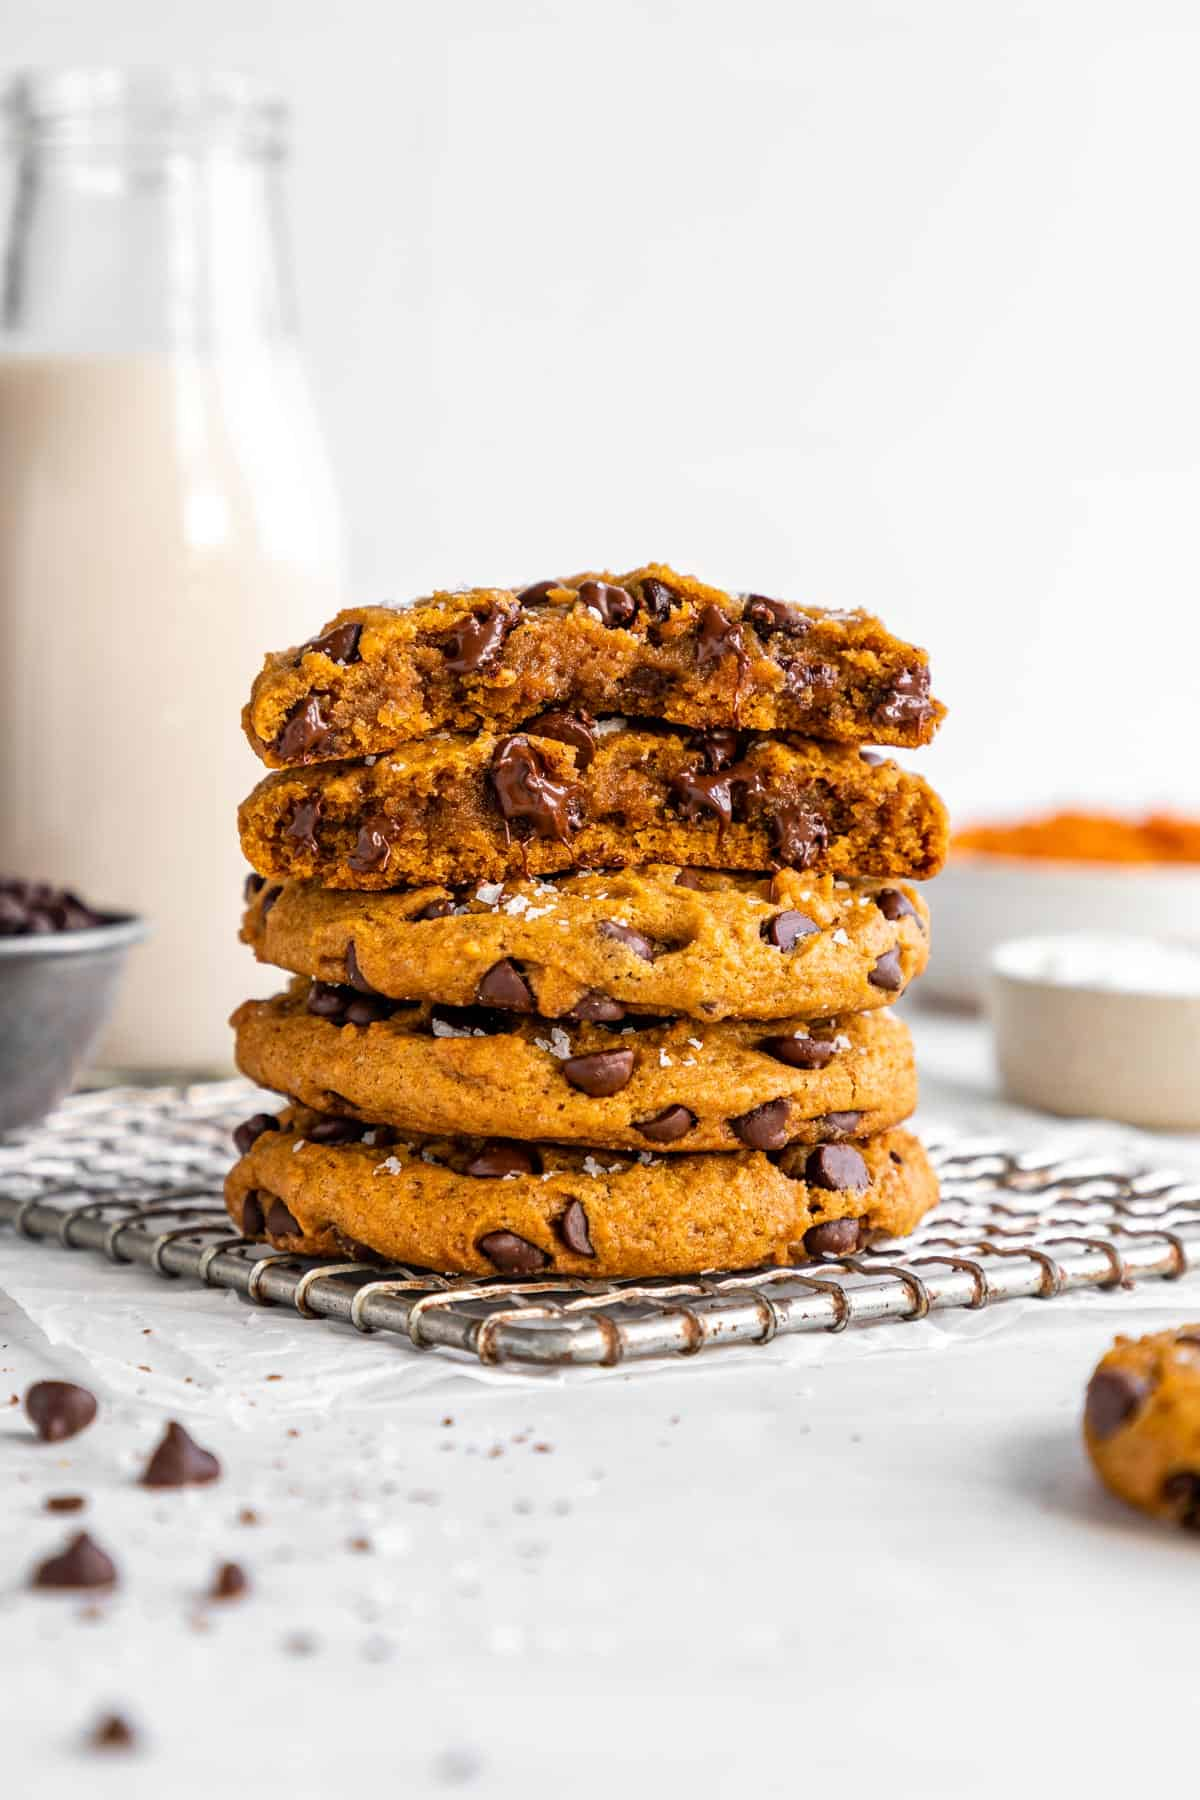 vegan pumpkin chocolate chip cookies stacked on top of each other with the top two cookies sliced in half